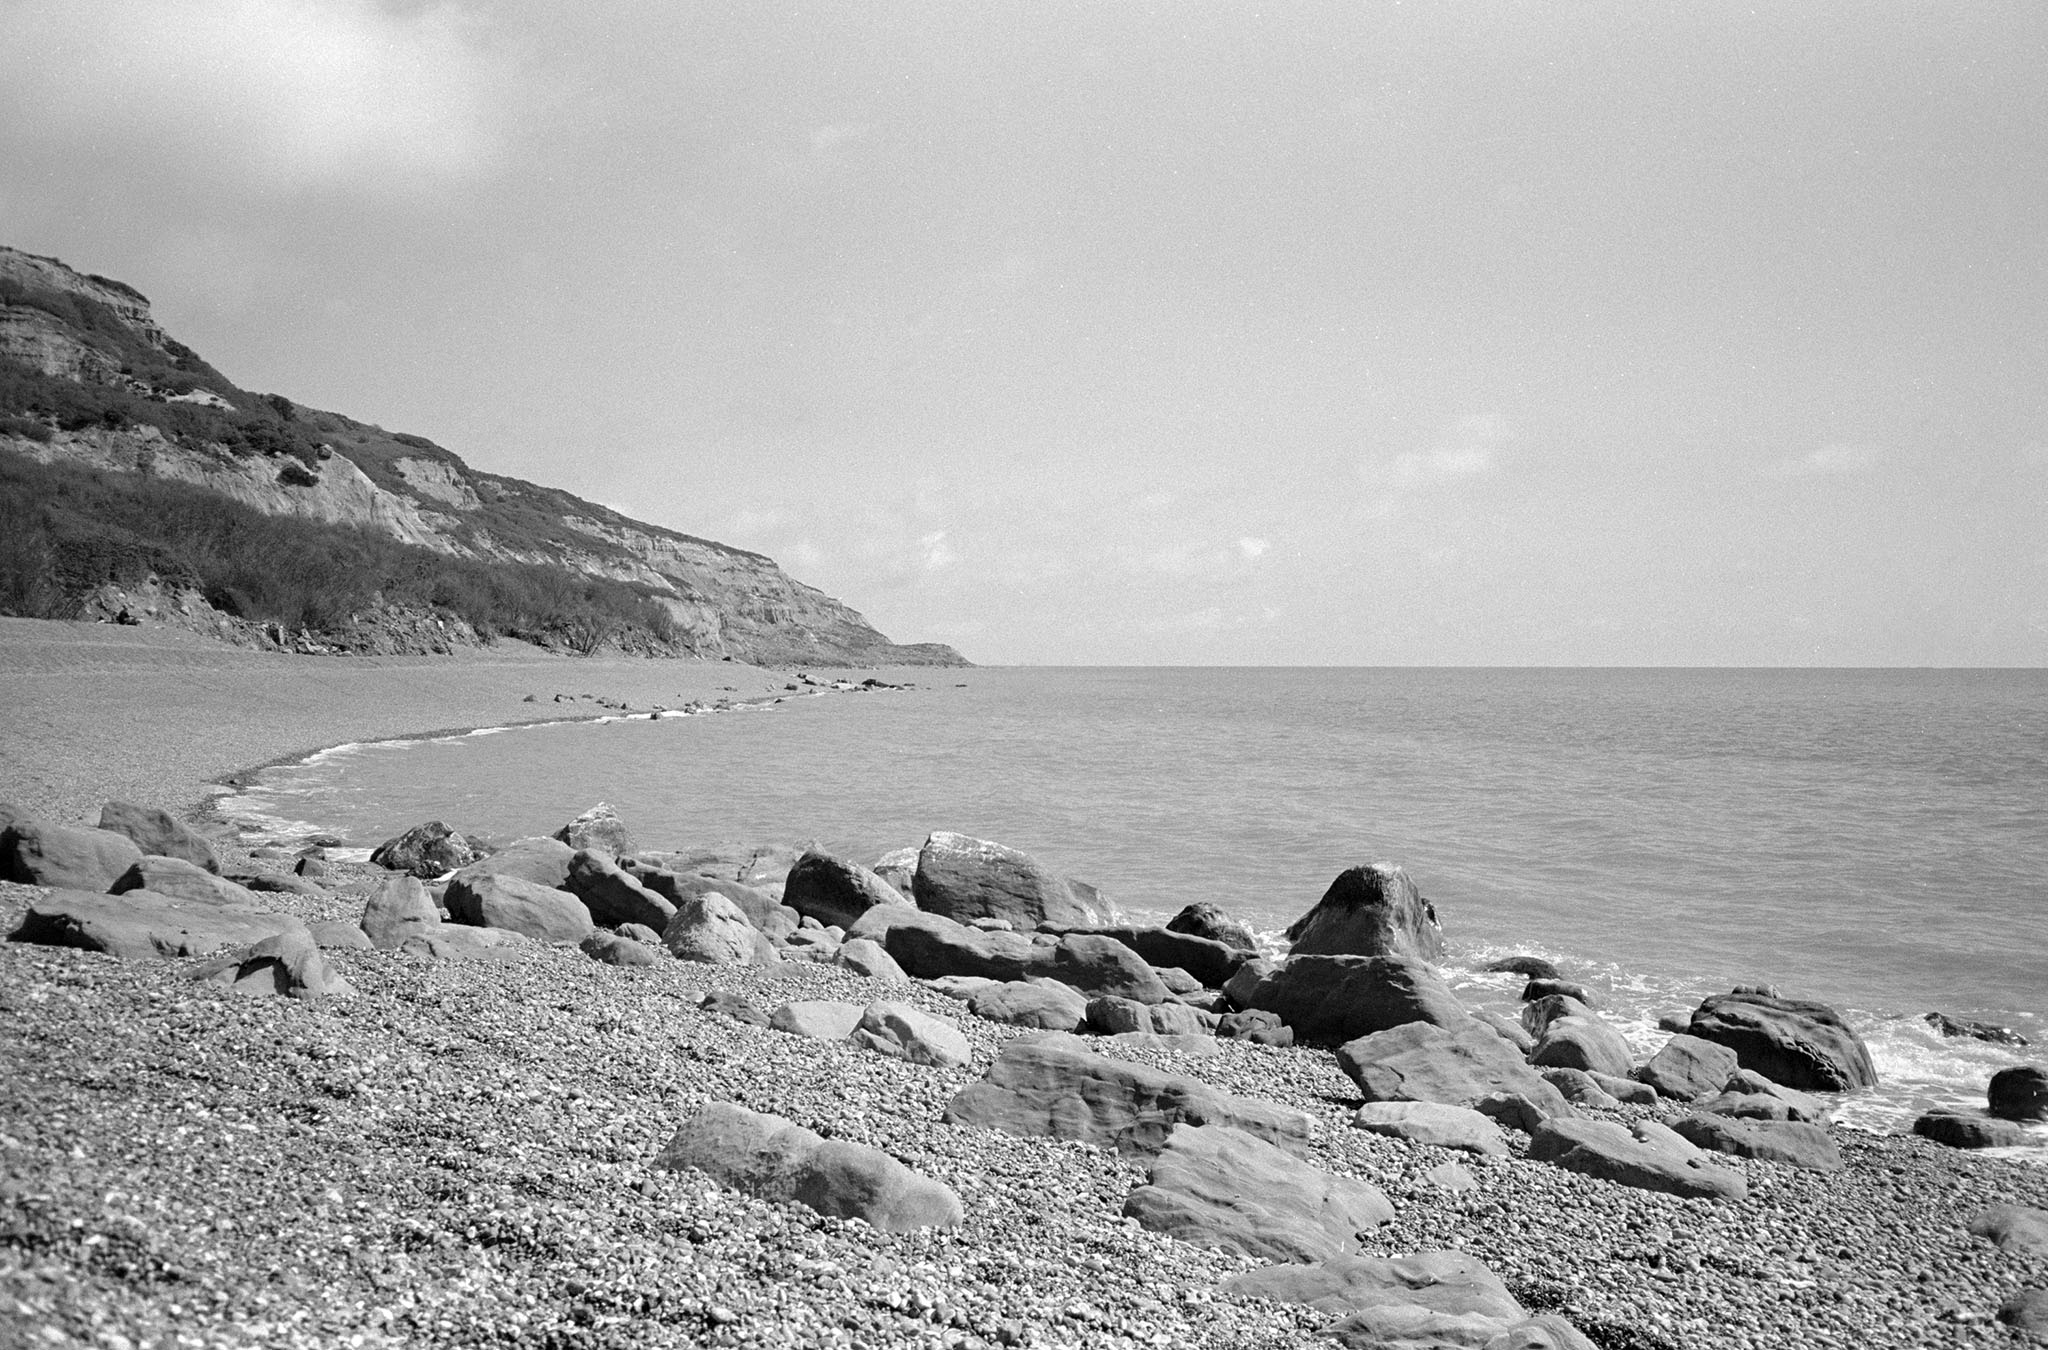 Adox Silvermax 100 Film Review